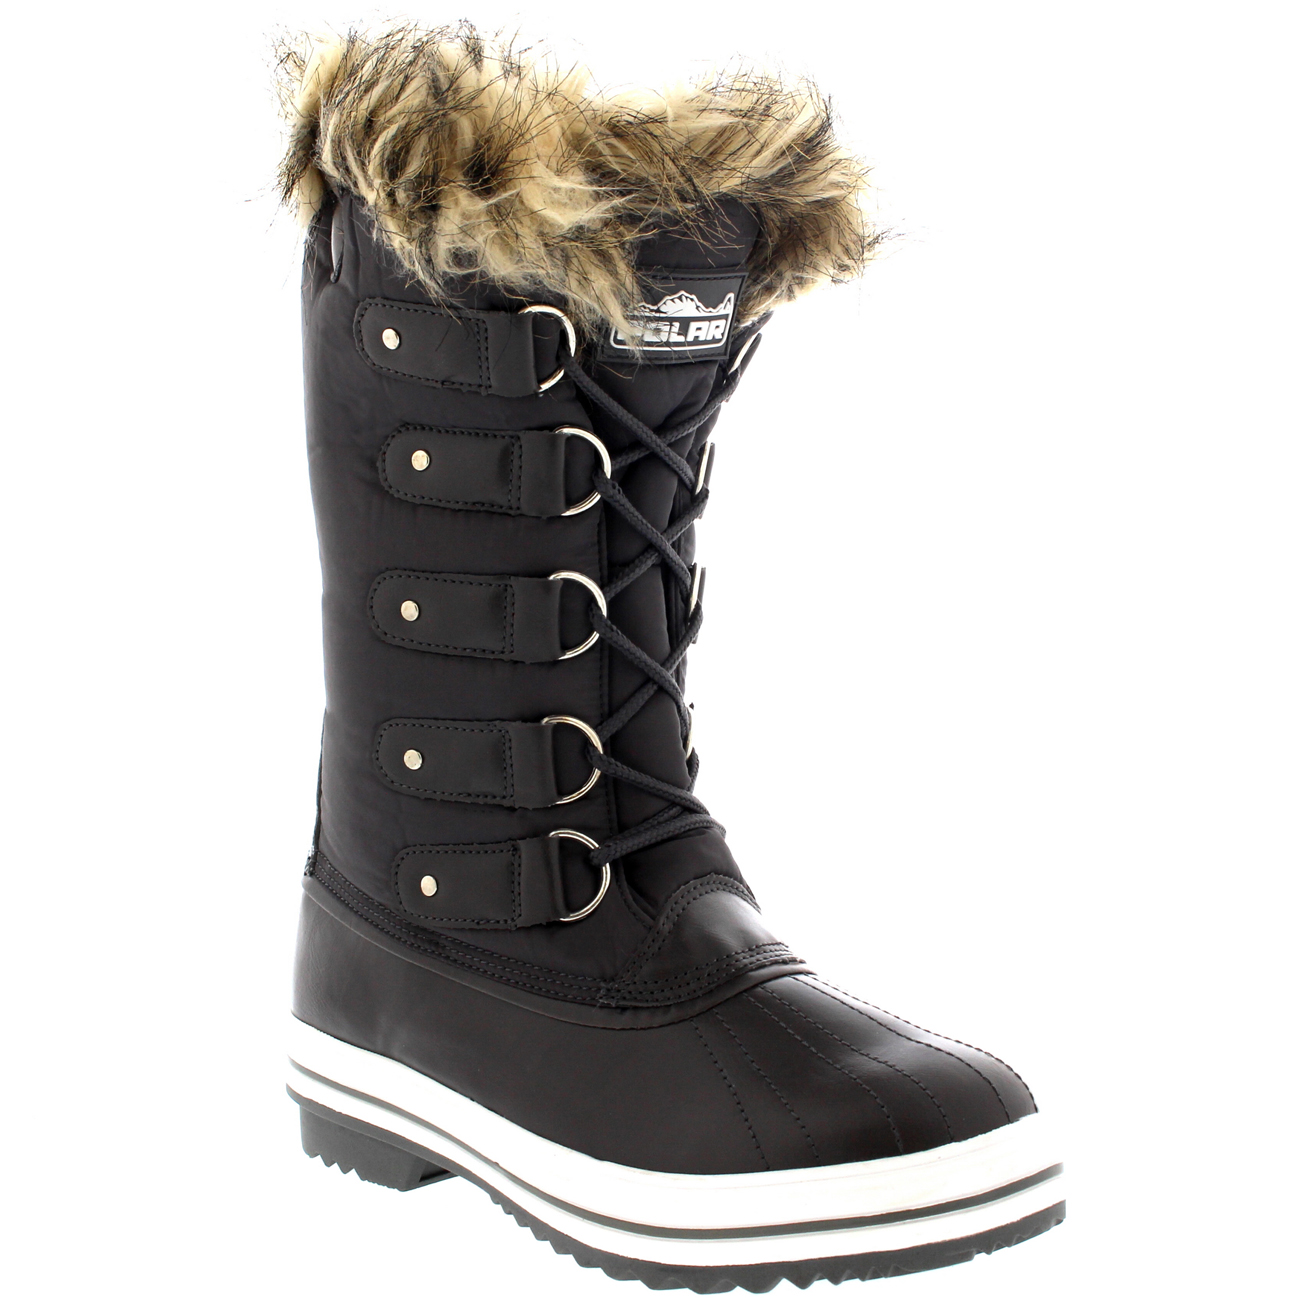 Womens Size 12 Snow Boots Sale | Homewood Mountain Ski Resort